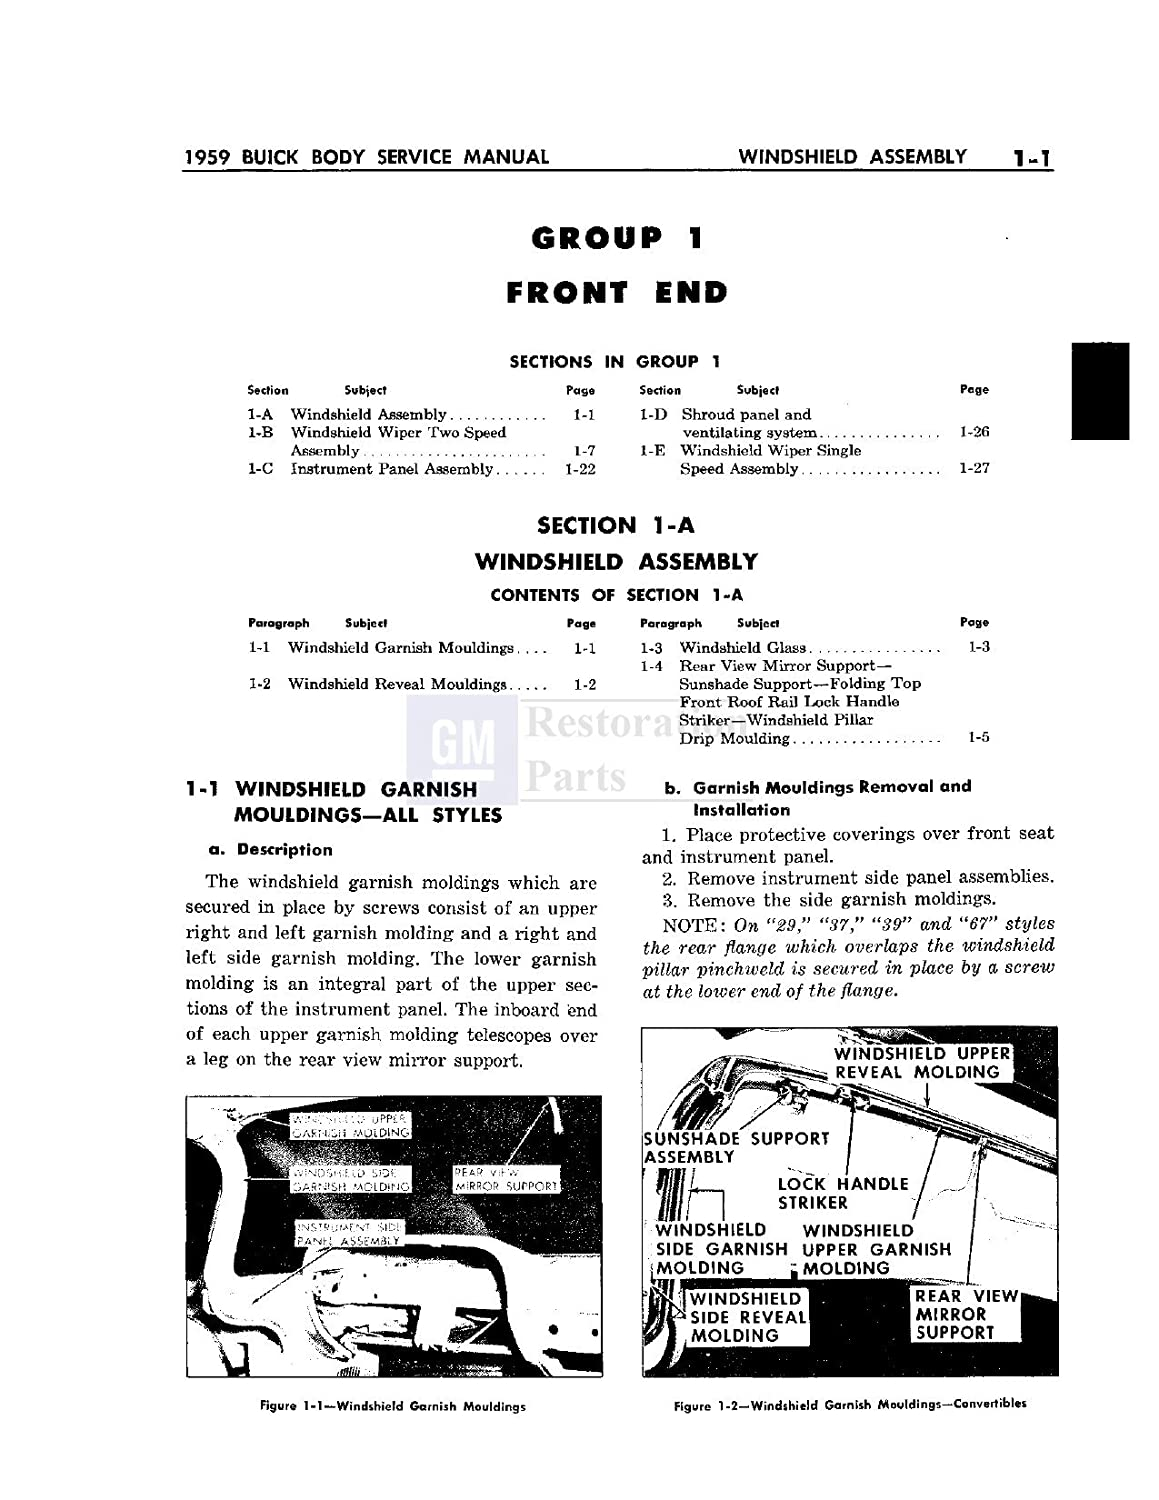 1959 Buick Body Shop Service Repair Manual Book Engine Ford 8n Wiring Diagram Restoration And Tips Drivetrain Electrical Oem Automotive